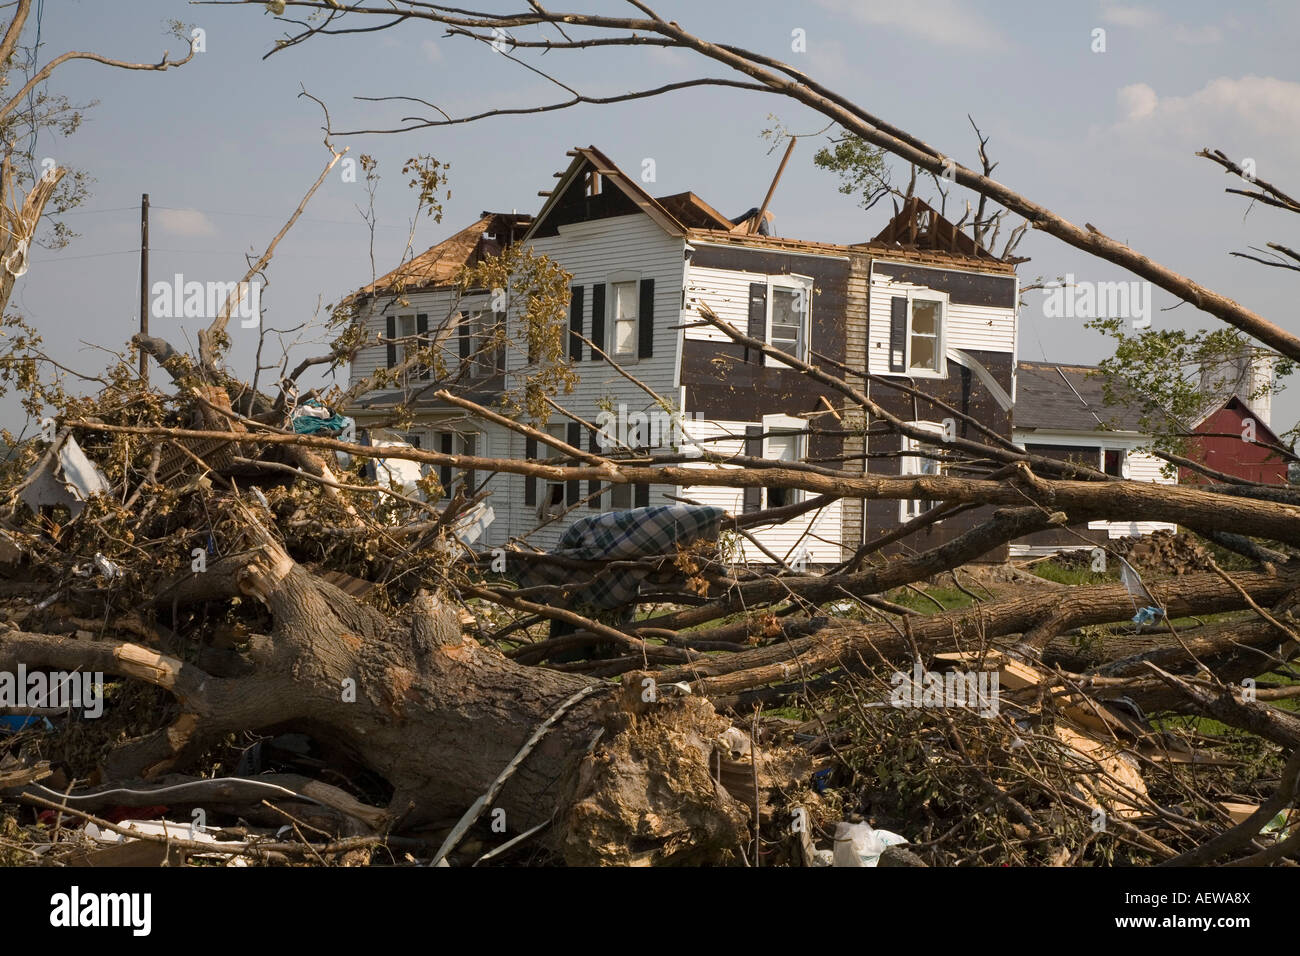 Potterville Michigan A home severely damaged by a tornado with a missing roof - Stock Image